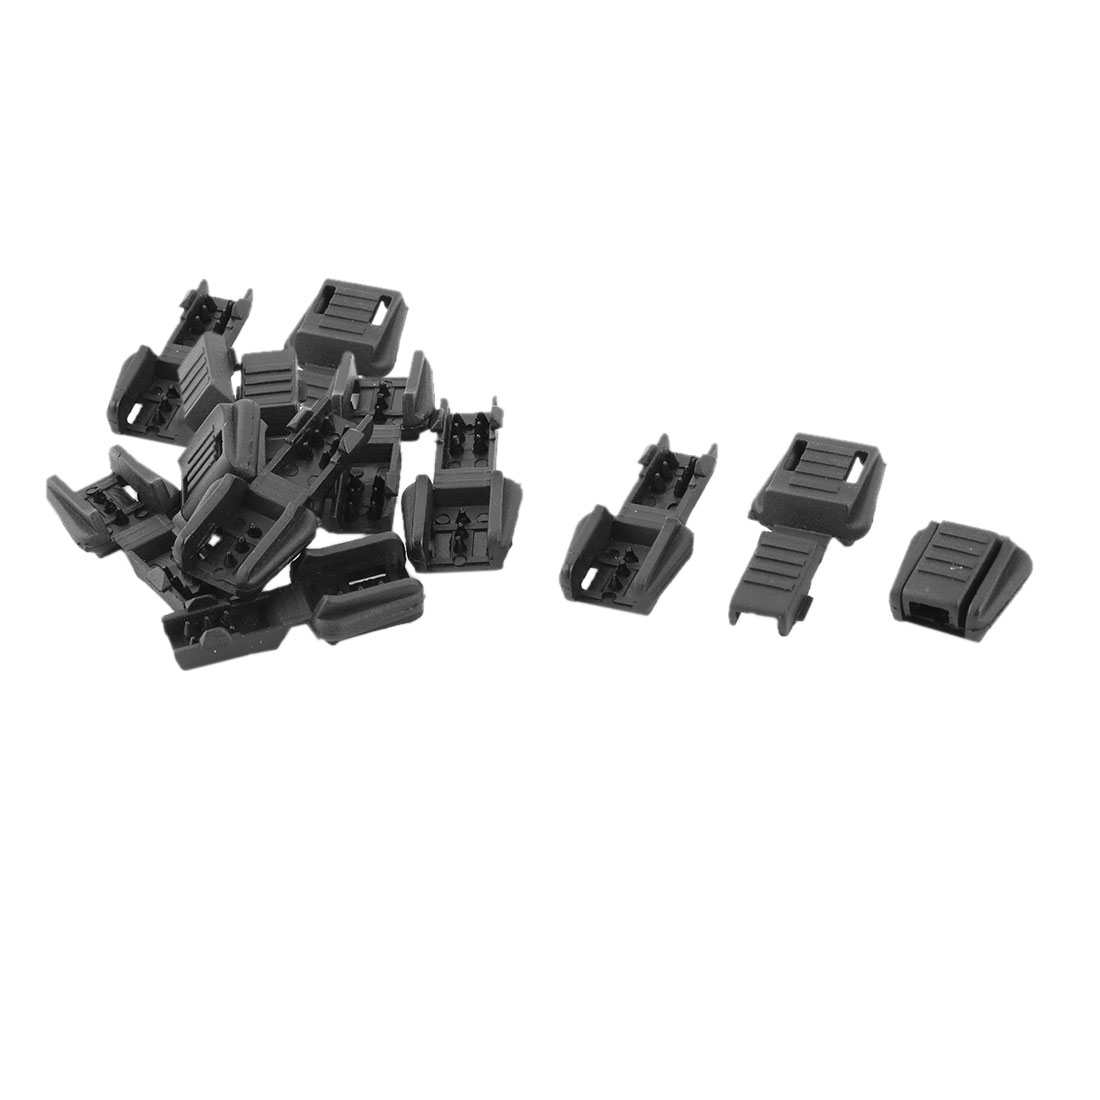 Plastic Single Hole Clothing Cord Rope Lock Clip Clamp Stopper Fastener Black 12pcs